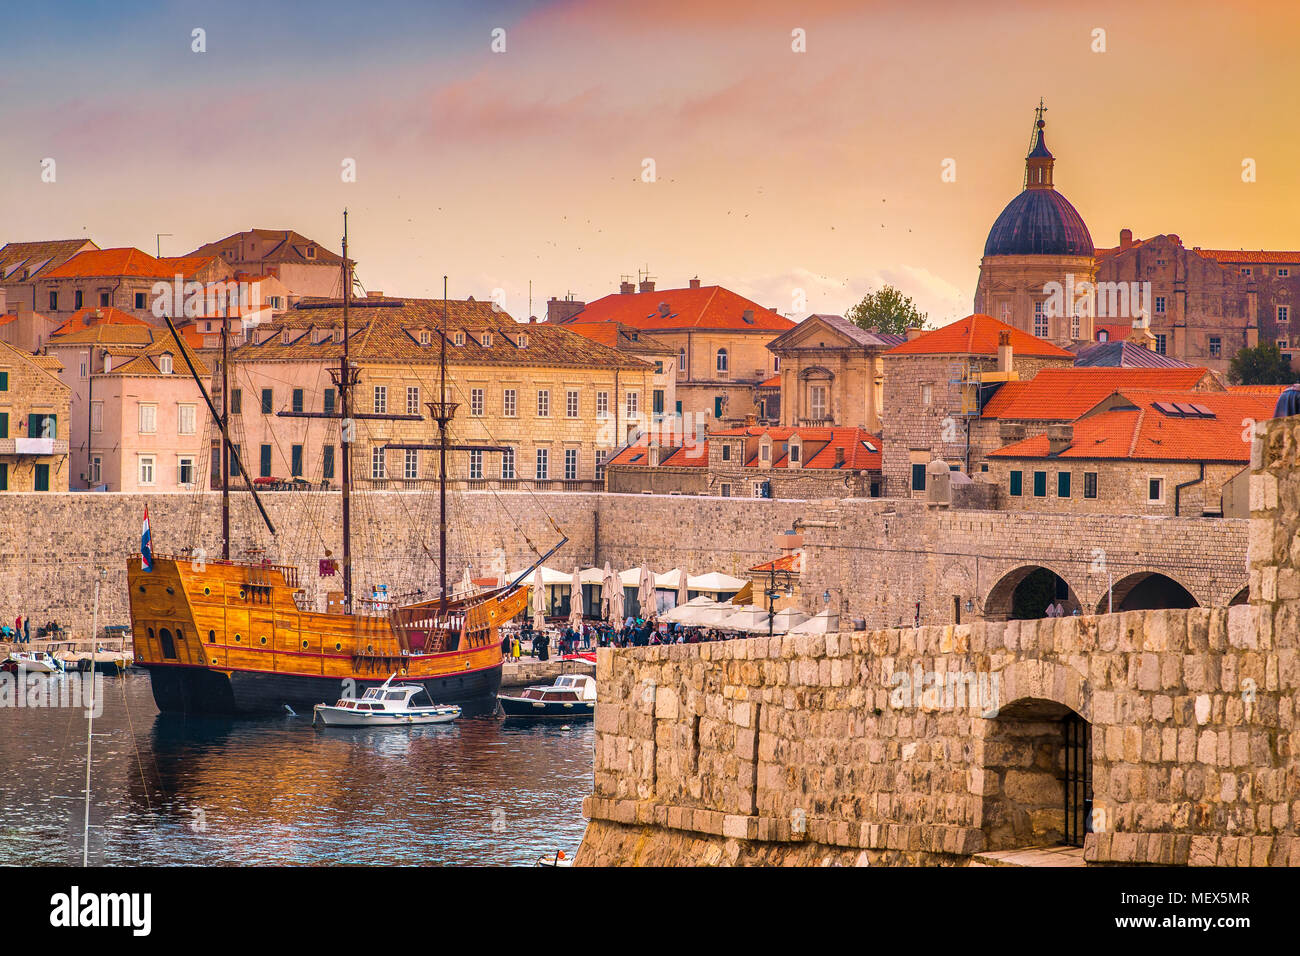 Panoramic aerial view of the historic town of Dubrovnik, one of the most famous tourist destinations in the Mediterranean Sea, at sunset, Croatia - Stock Image